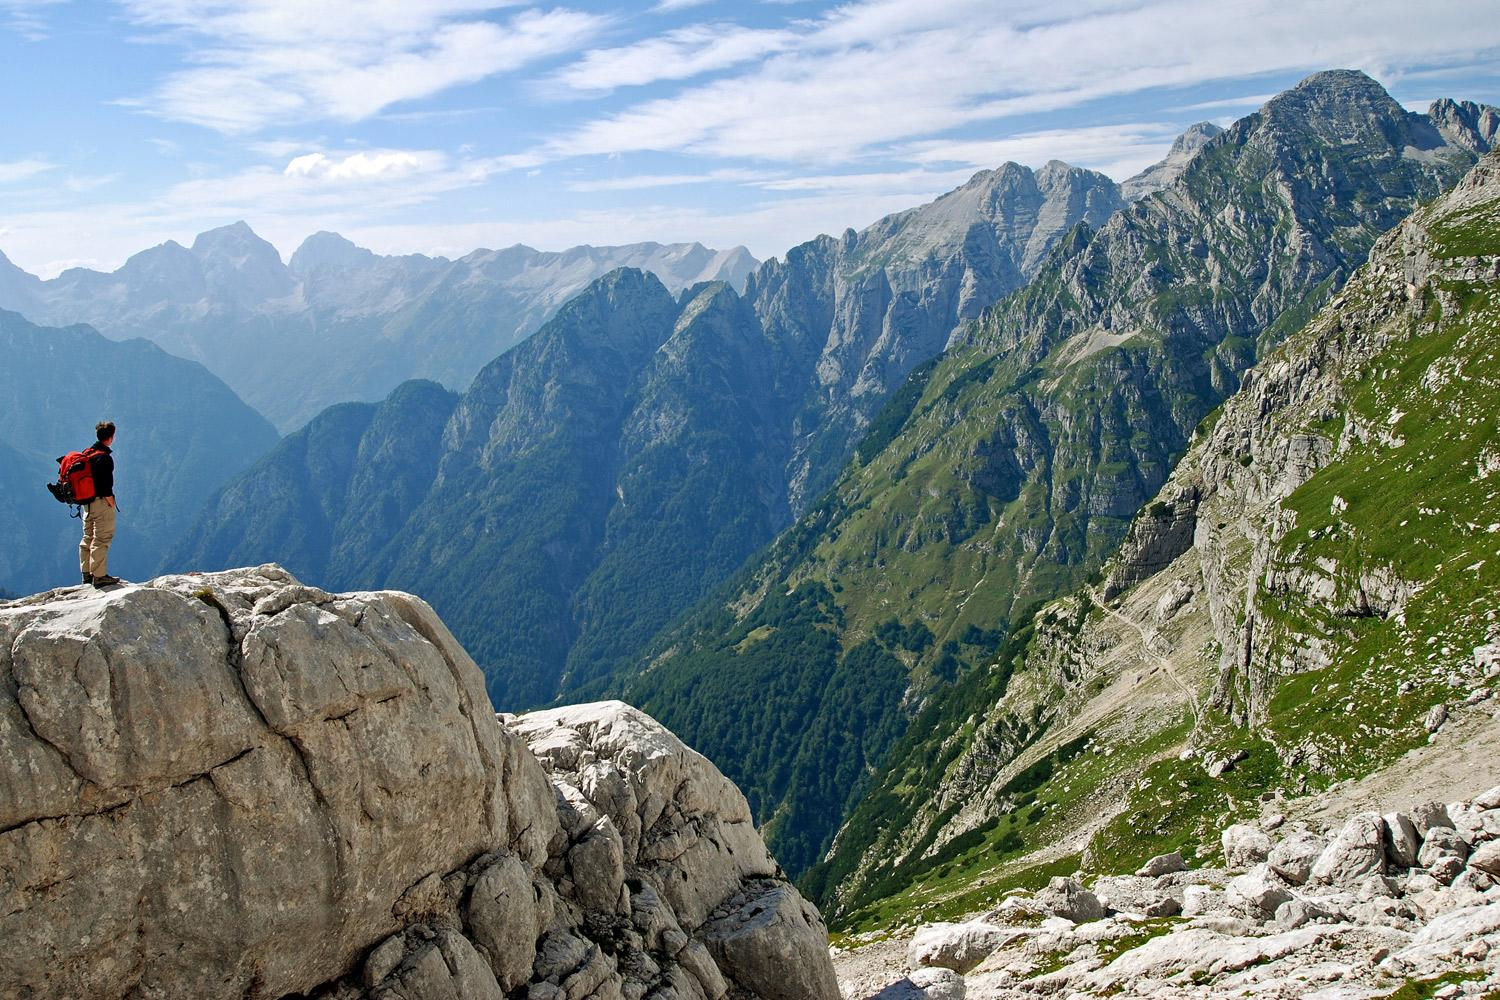 julian alps hut to hut hiking t